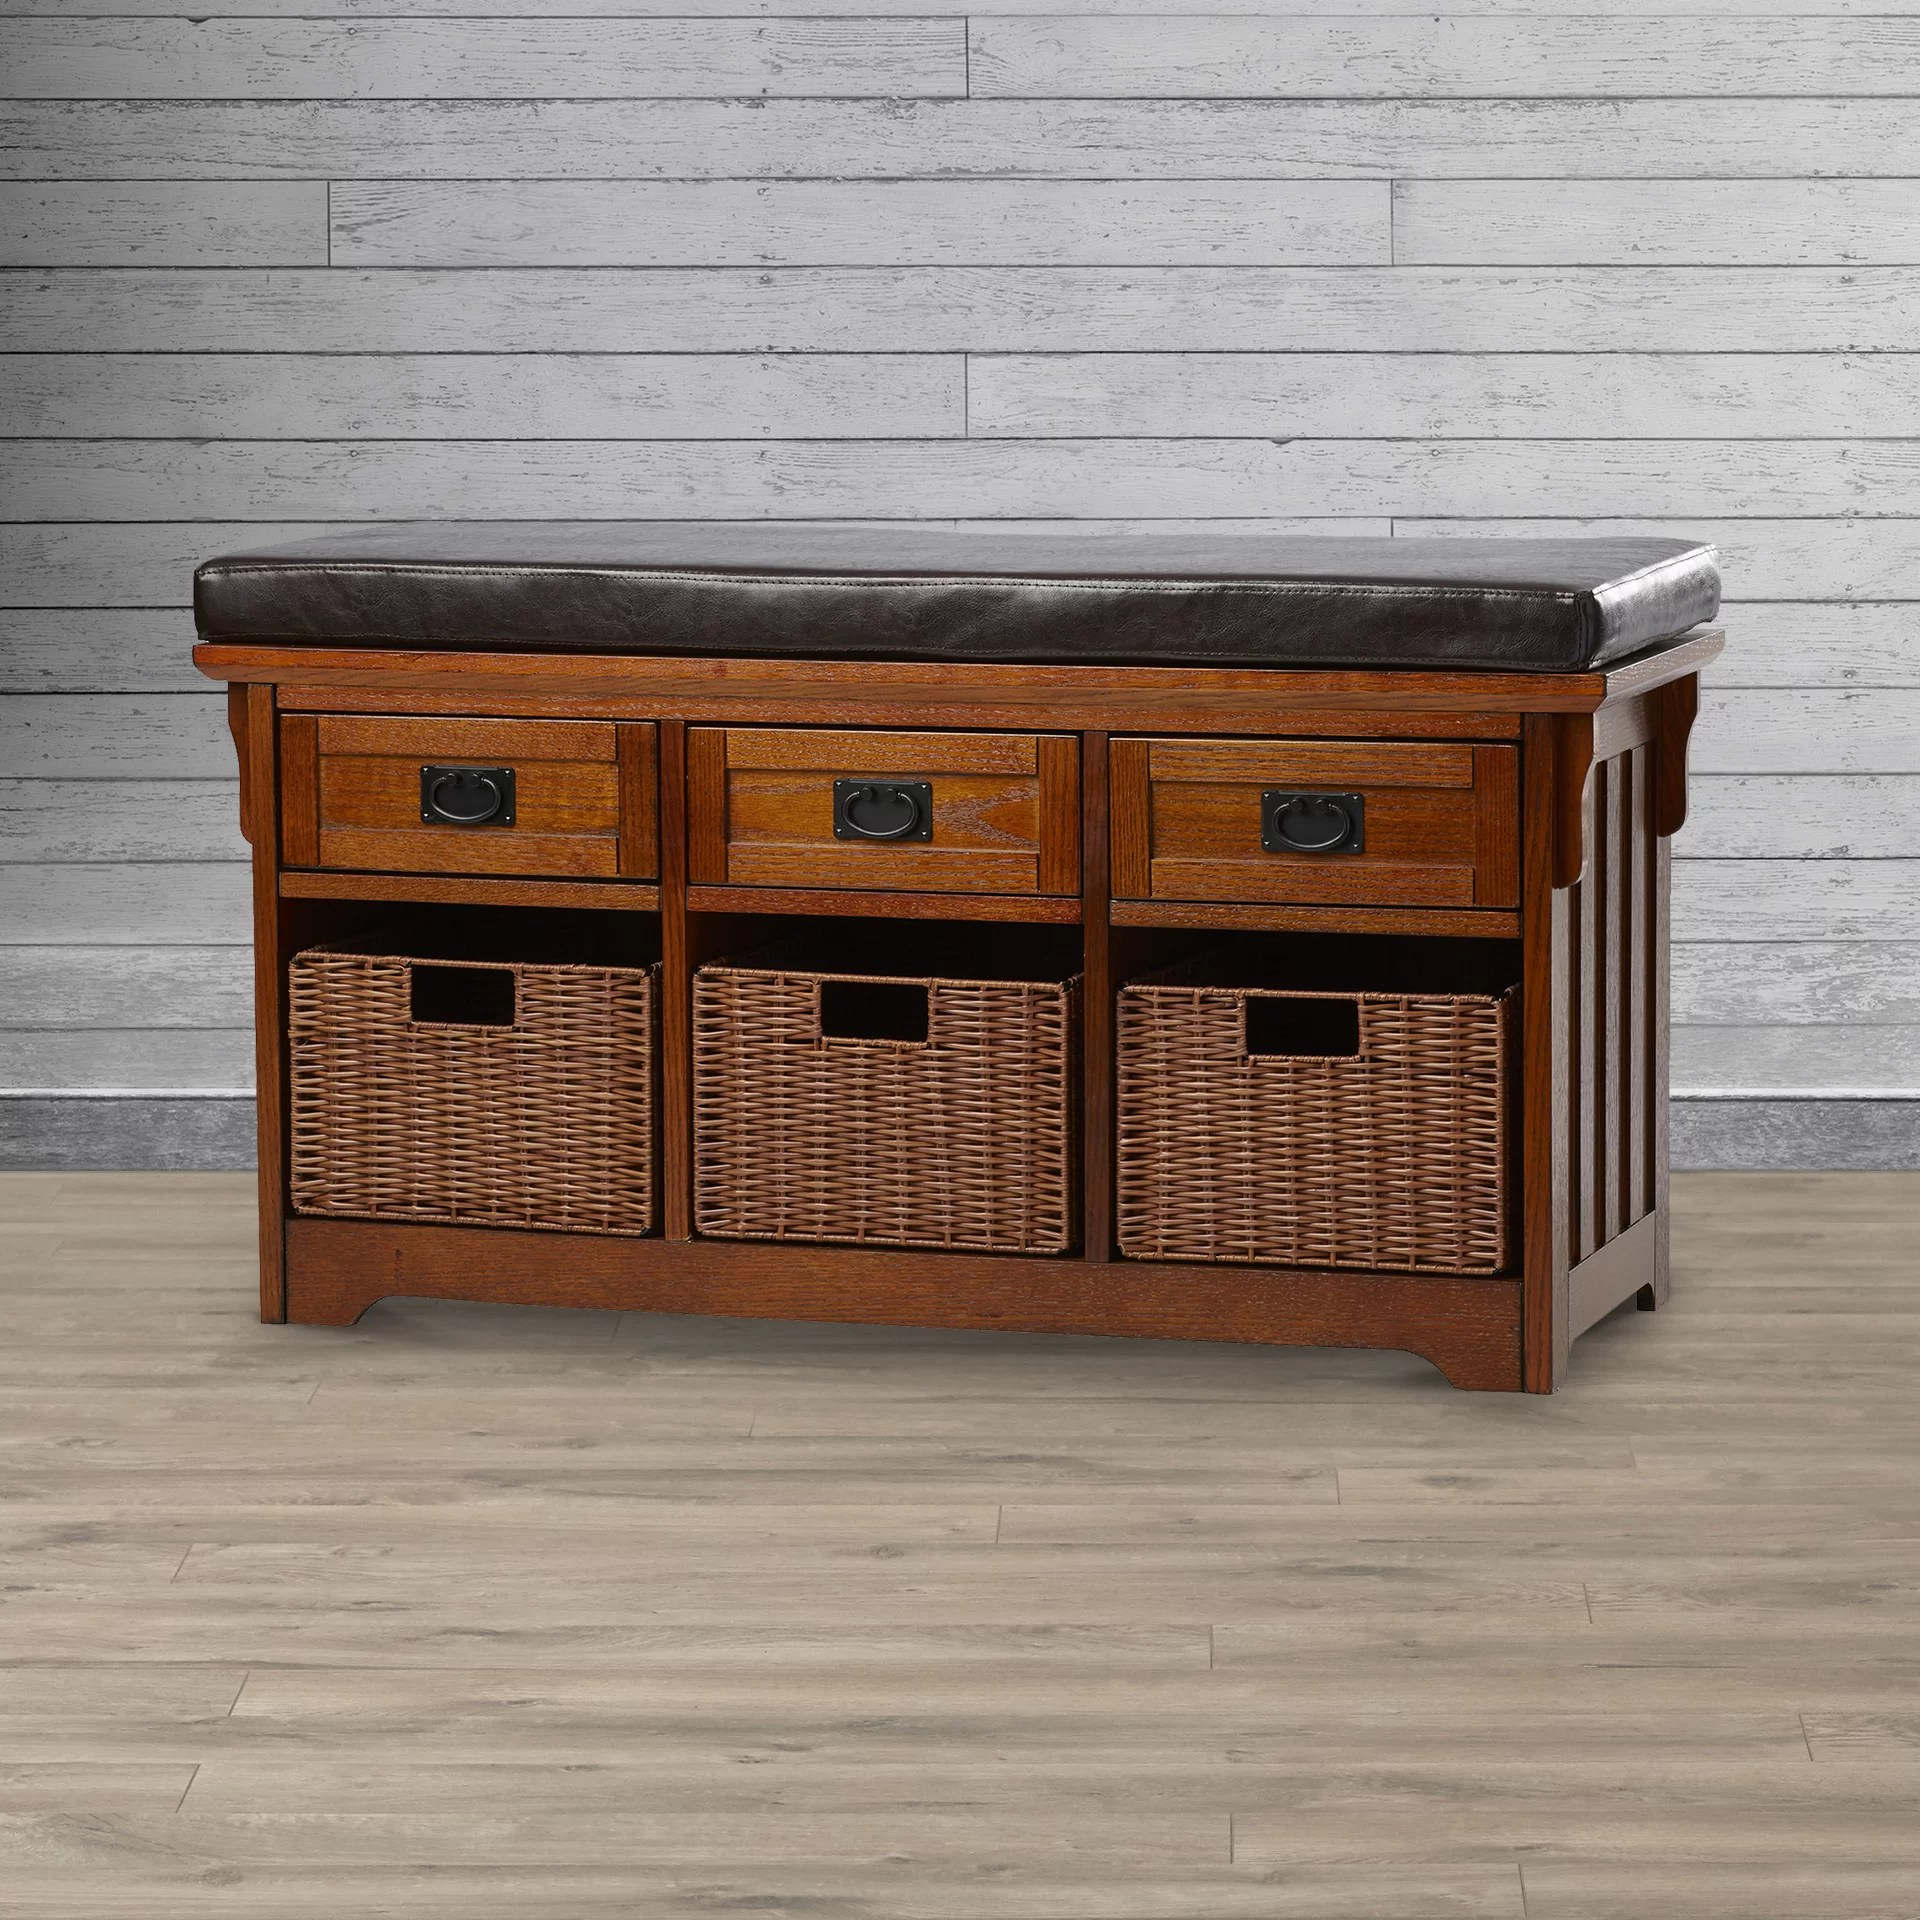 Wooden Storage Bench Hemlock Wooden Storage Bench